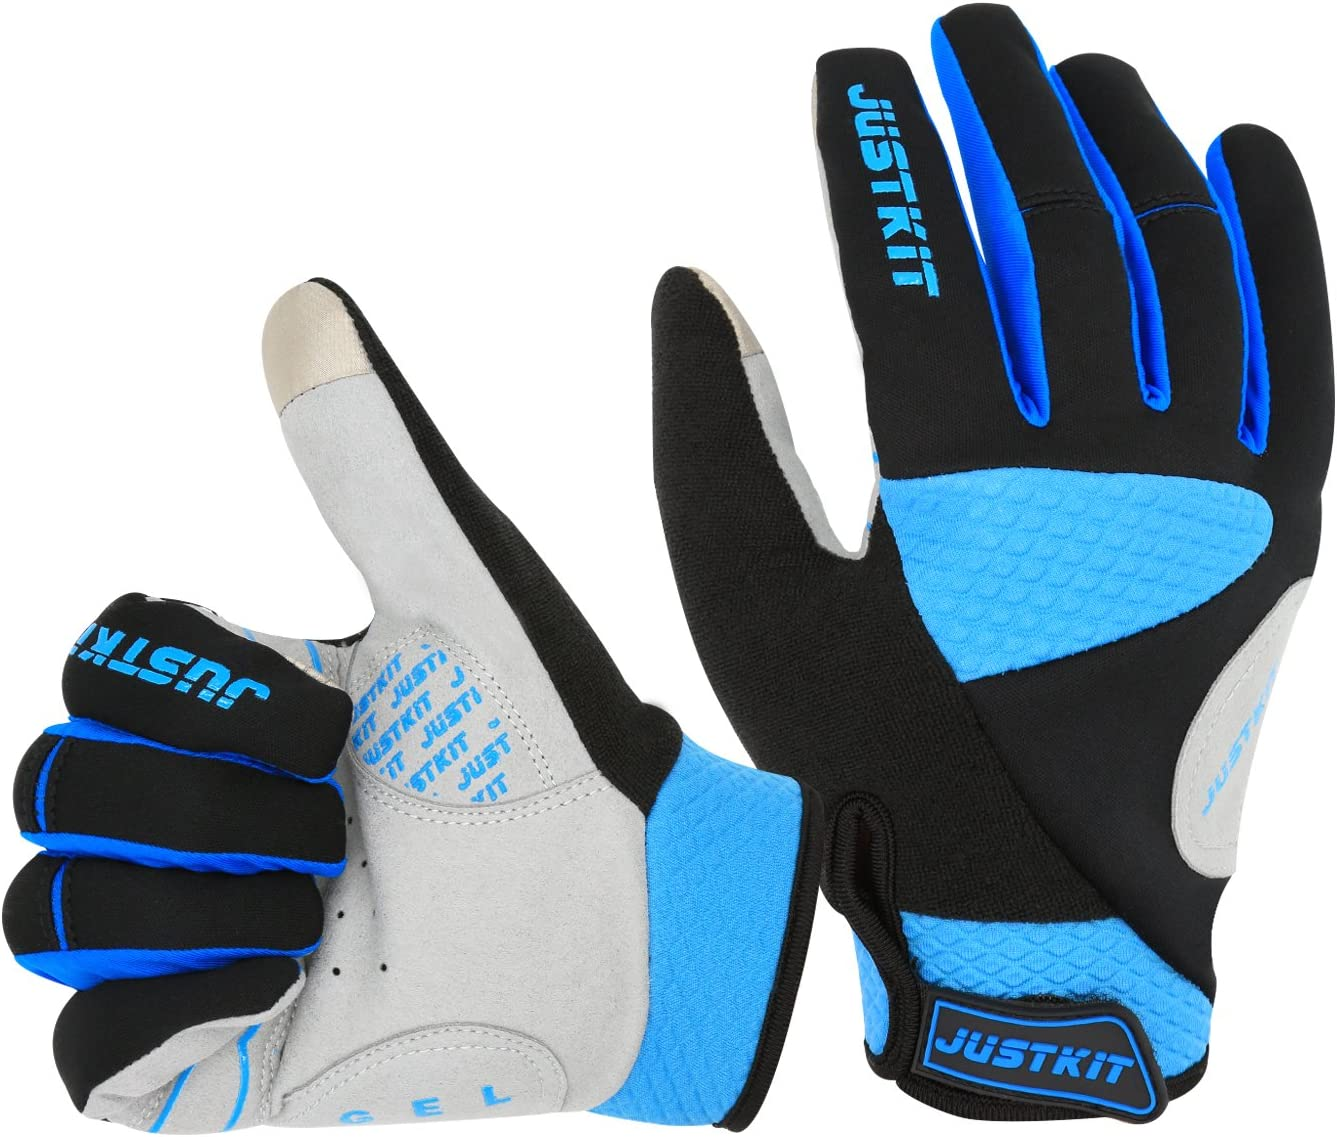 JUSTKIT Cycling Gloves -Touch Screen Full Finger Bike Gloves - Windproof Mountain Bike Gloves - Road Racing Bicycle Gloves - Gel Pad Biking Gloves for Women and Men